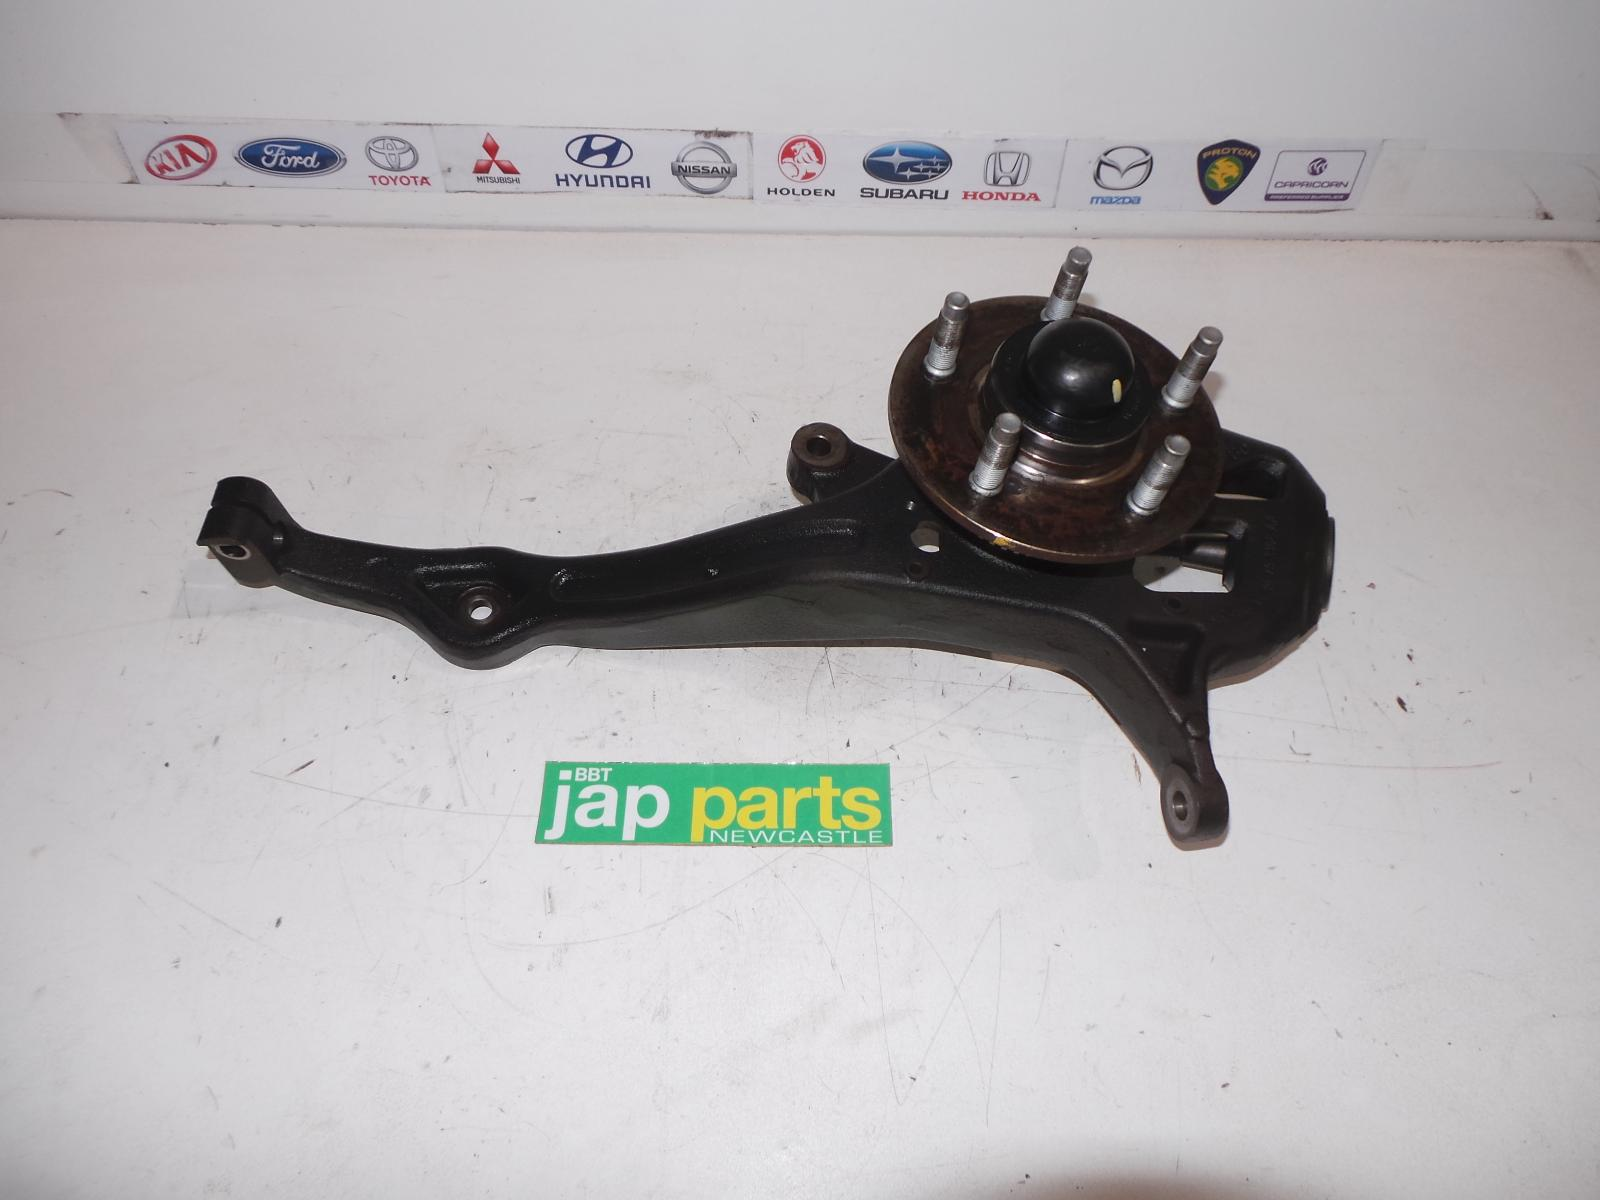 FORD-TERRITORY-LEFT-FRONT-HUB-ASSEMBLY-SY-MKII-2WD-05-09-04-11-09-10-11